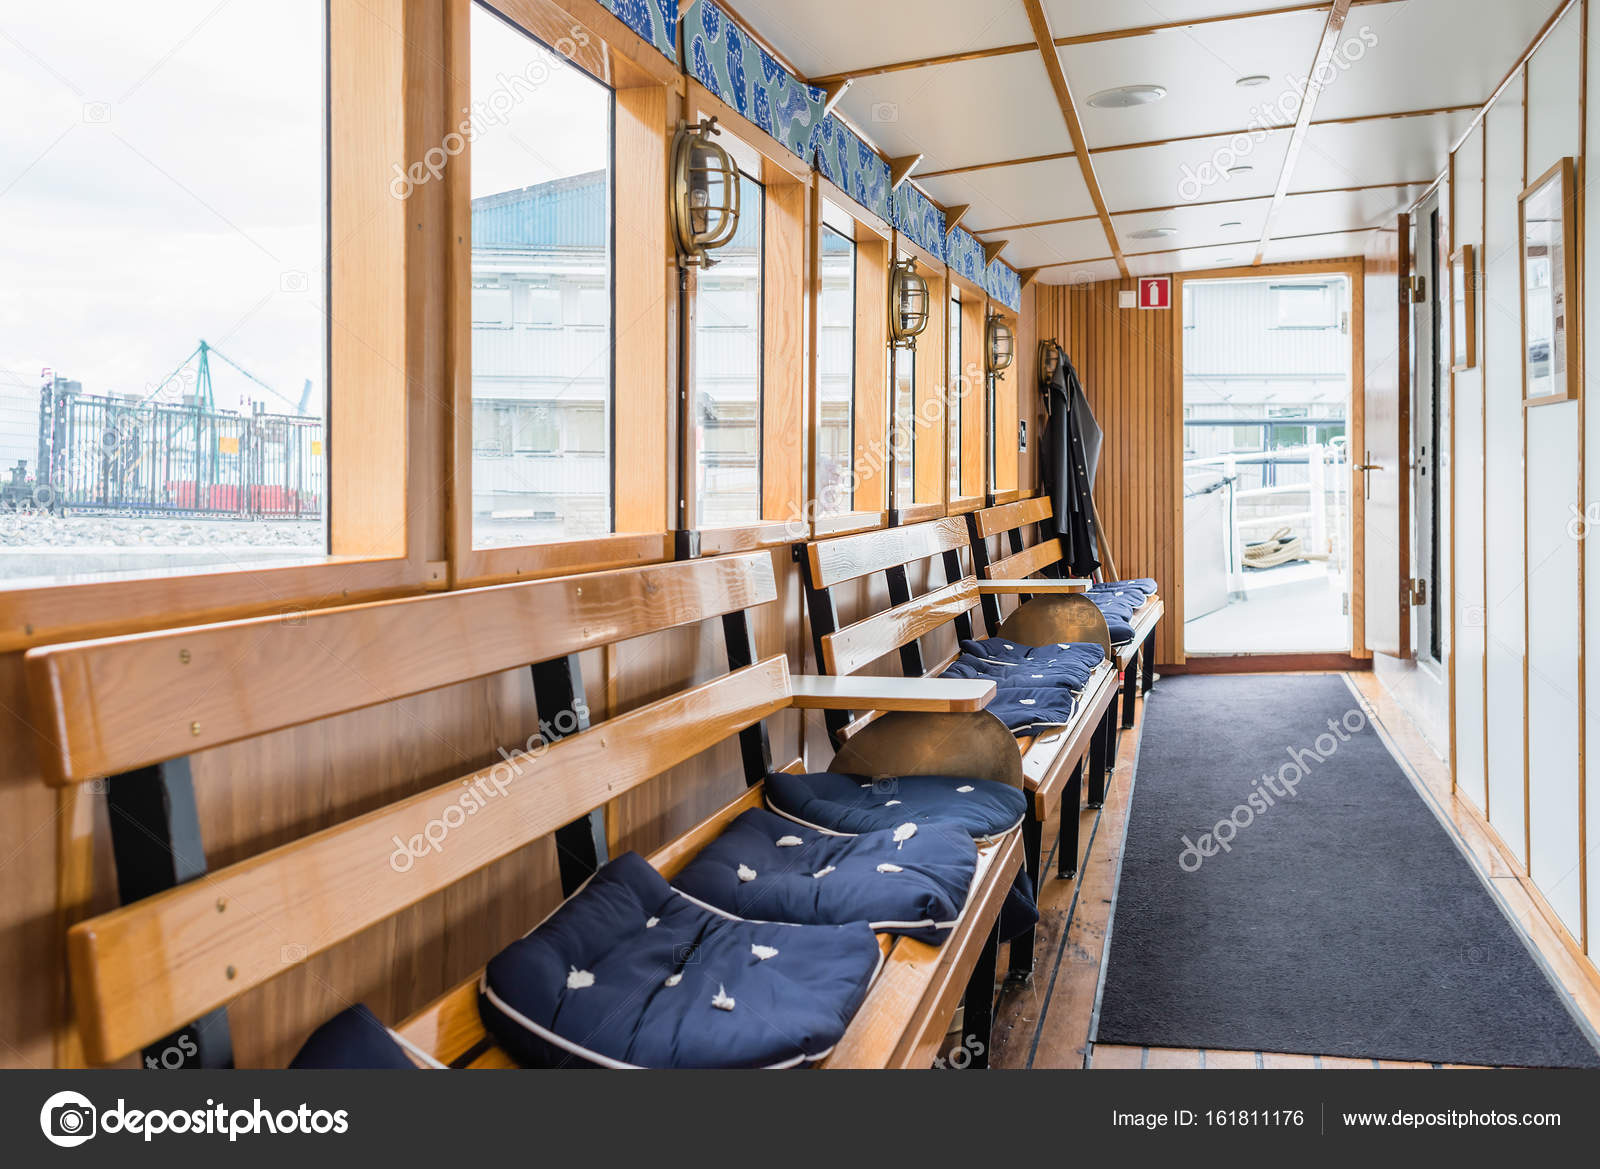 STOCKHOLM, SWEDEN   JULY 12, 2017: Boat Interior With Windows, Wooden  Benches And Soft Seats U2014 Photo By A.petrych@gmail.com. Find Similar Images